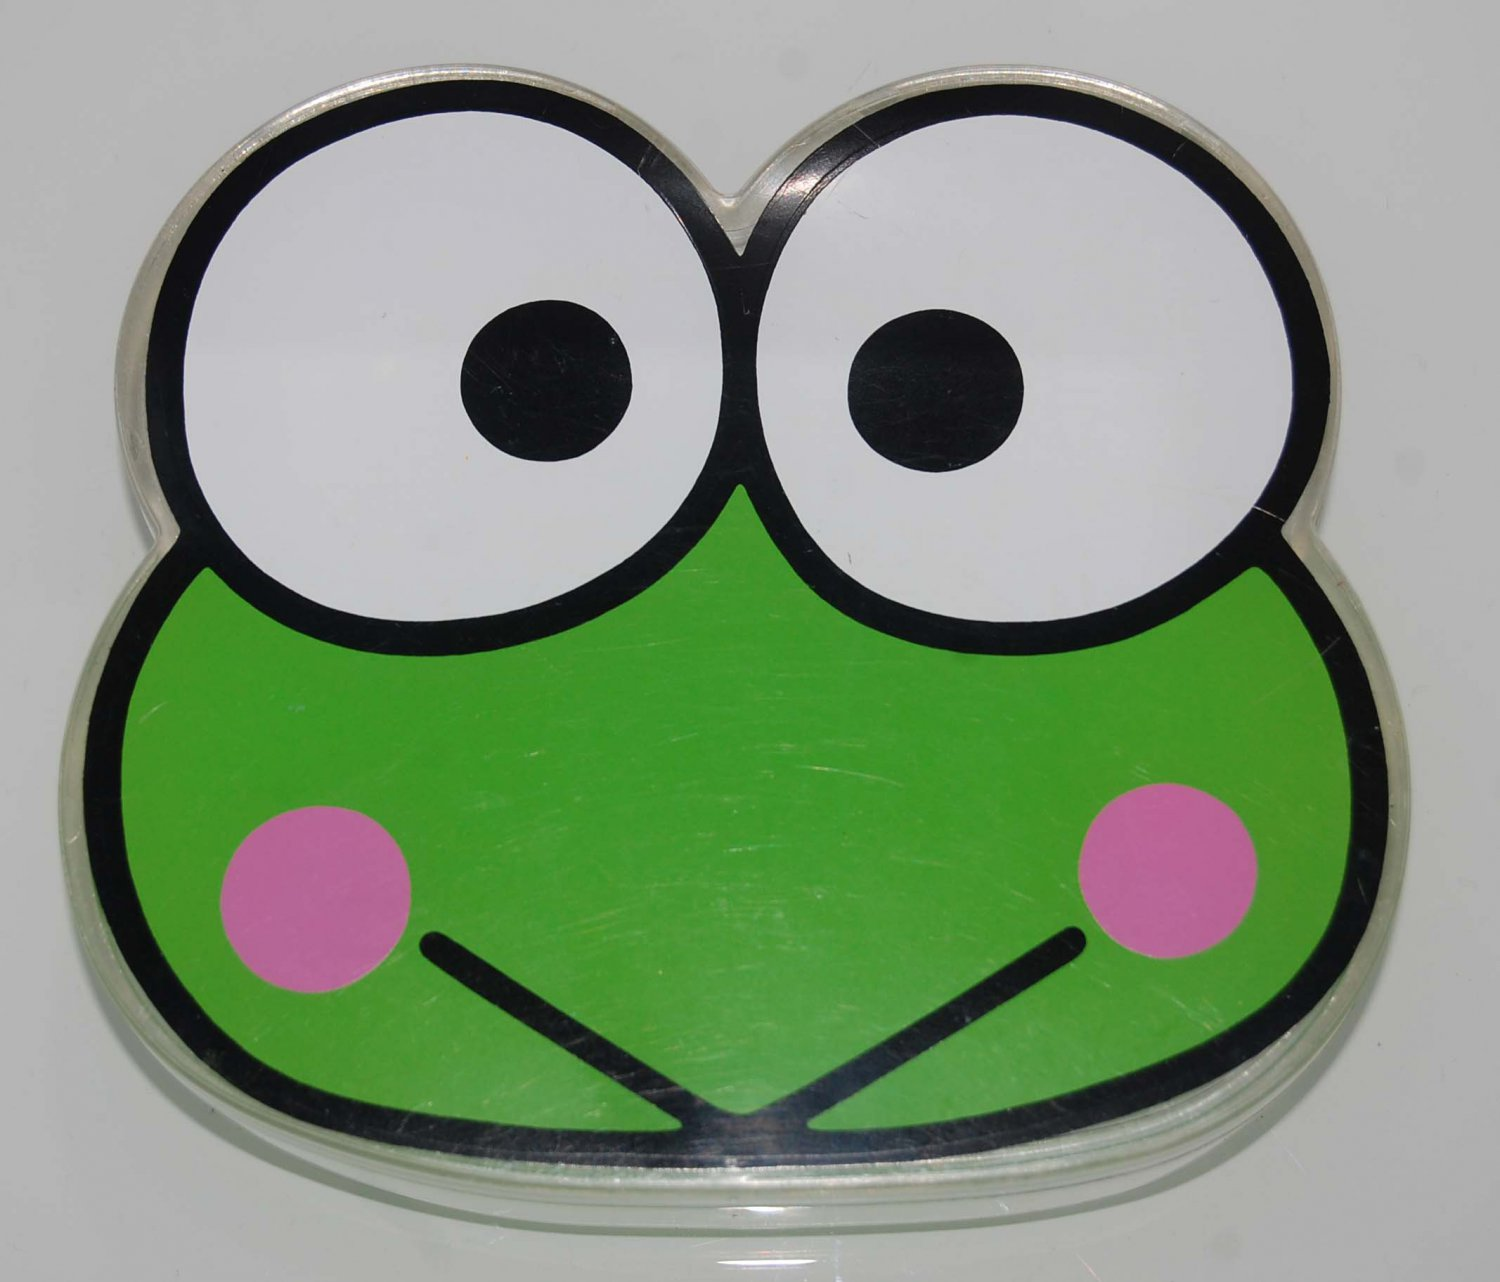 USED Sanrio KeroKero Keroppi Transparent Plastic Box Case Made in Japan W/ MARKS & SCRATCHES